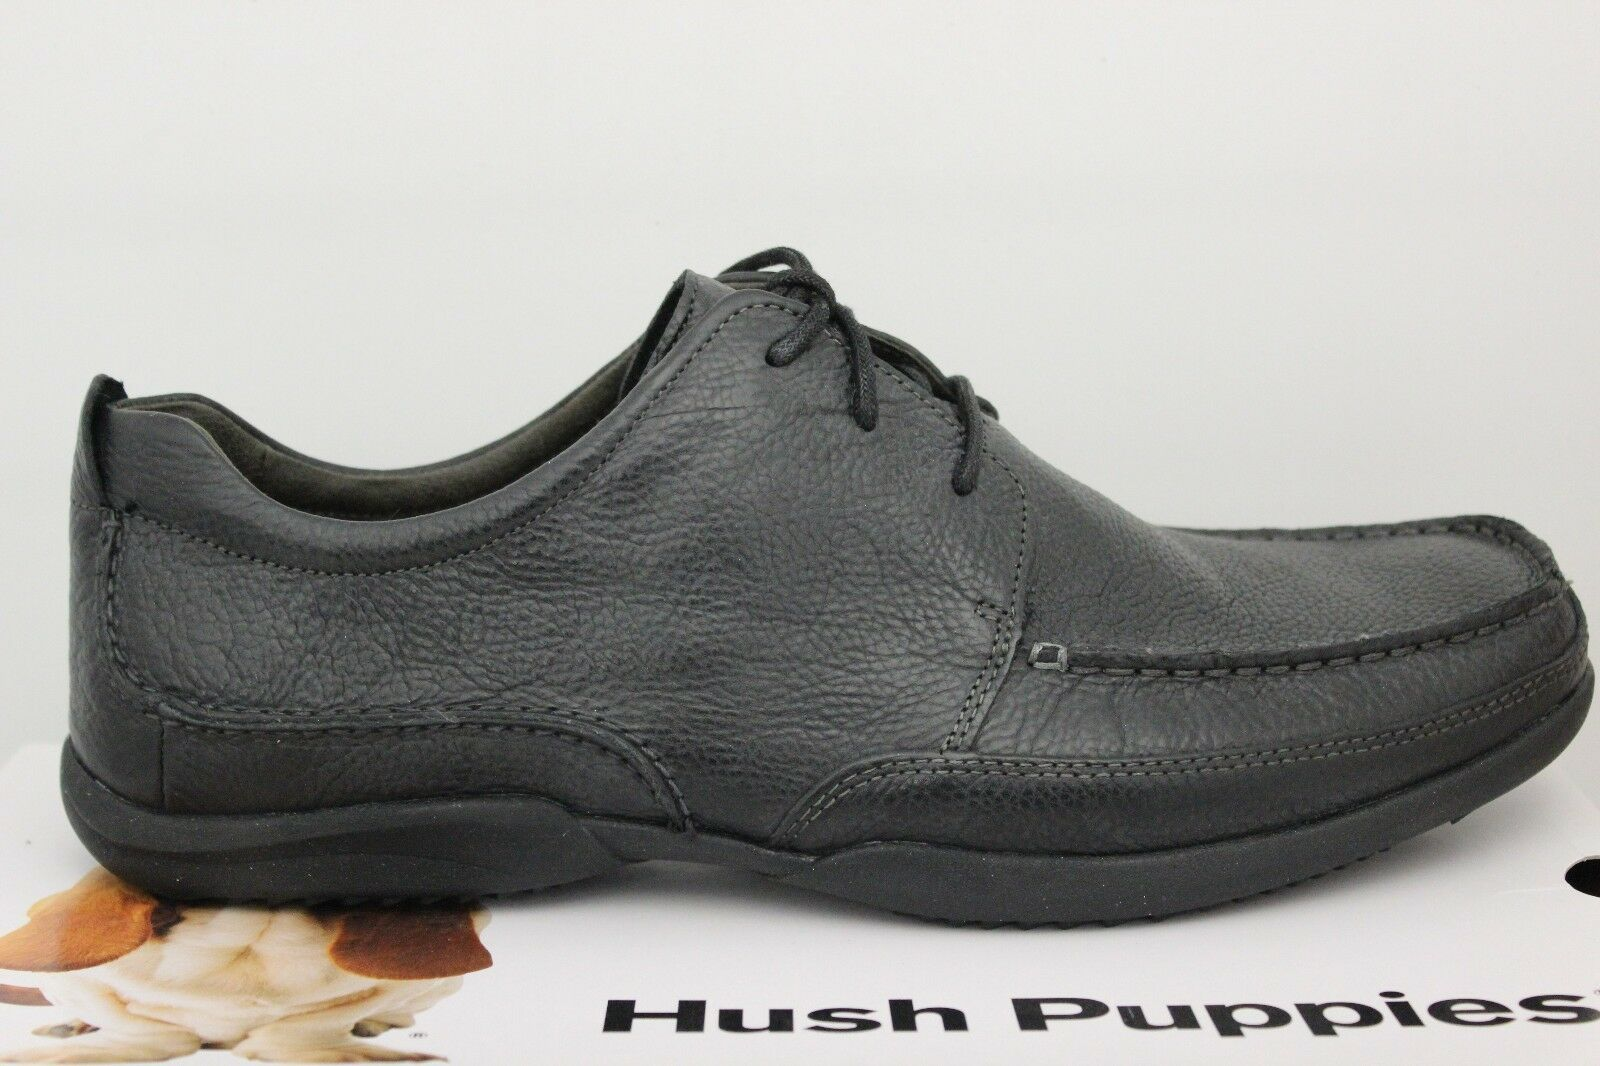 Uomo Hush Puppies Puppies Puppies Accel Oxford_MT nero Leather Dimensione 11.5 Extra Wide 103342 New 9d1584